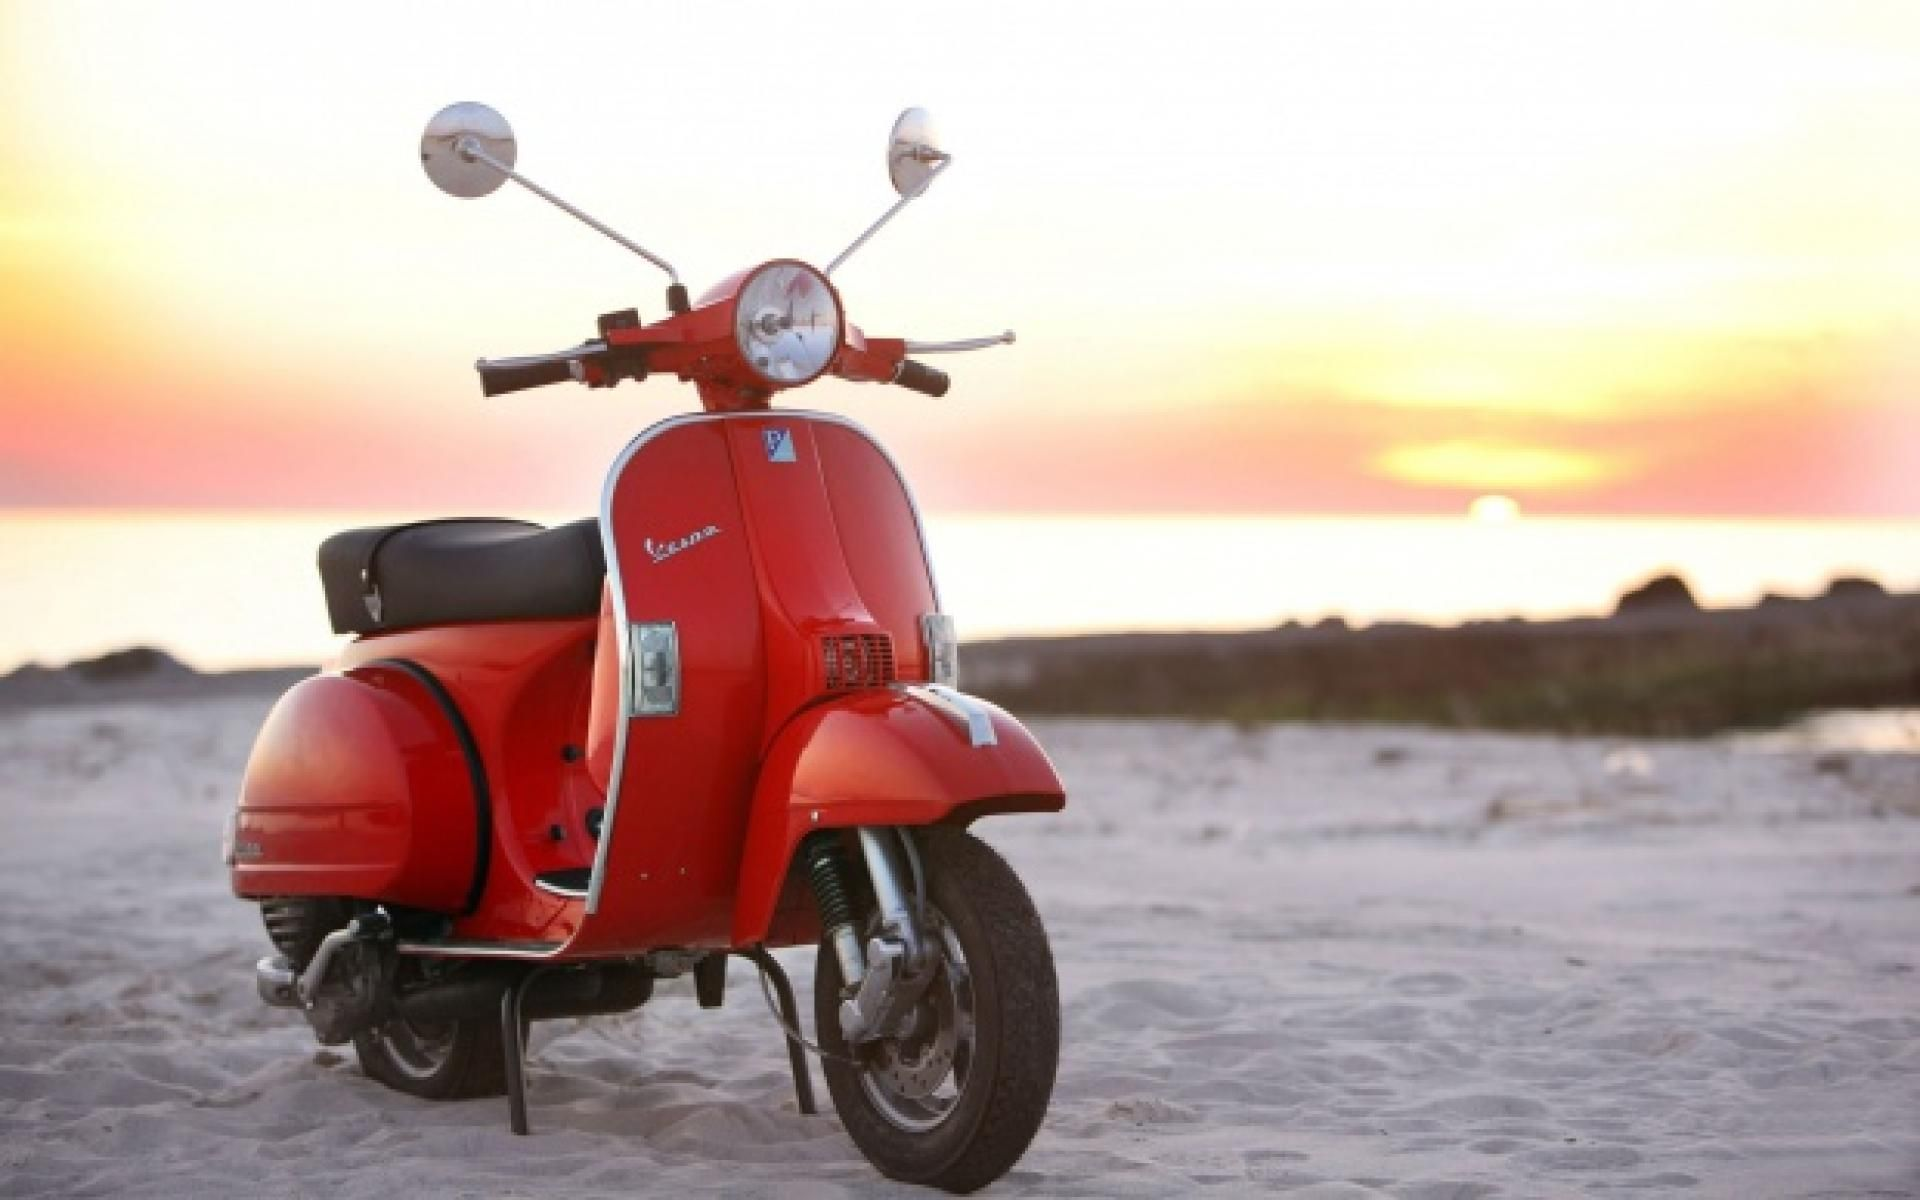 Scooter Wallpapers Top Free Scooter Backgrounds Wallpaperaccess